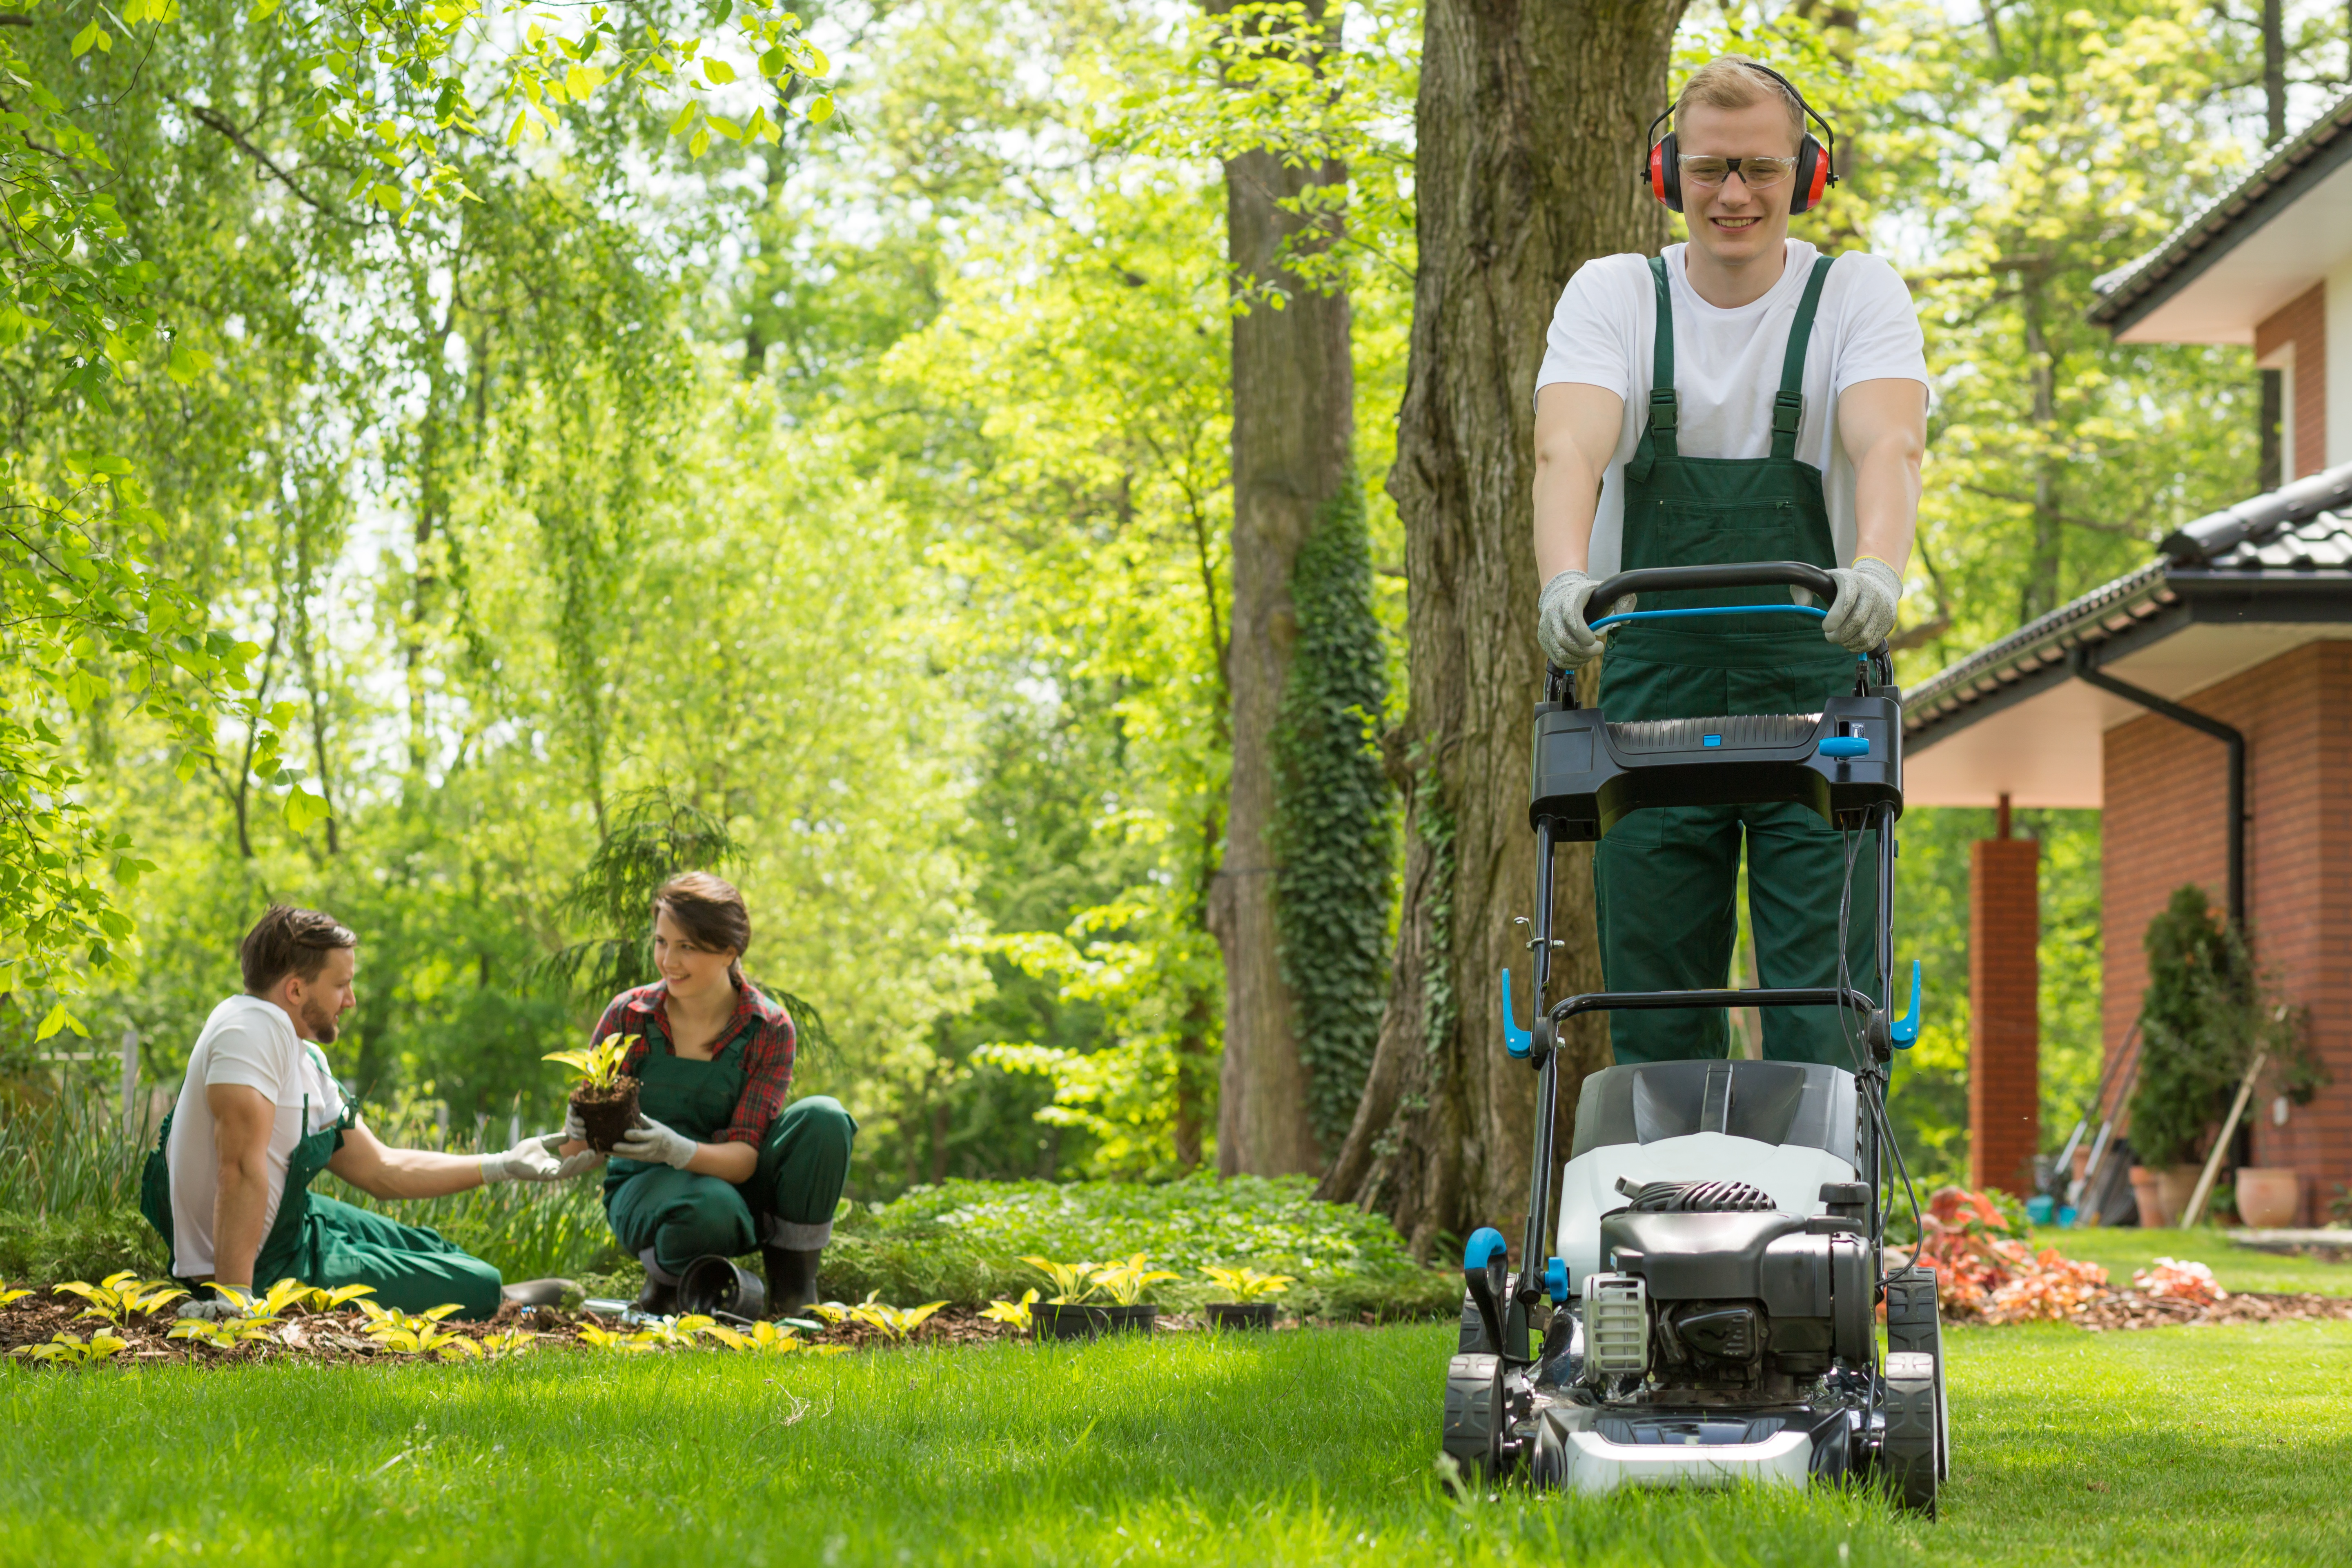 Always refer to the owners manual for operating and safety instructions before attempting to operate your lawn mower.